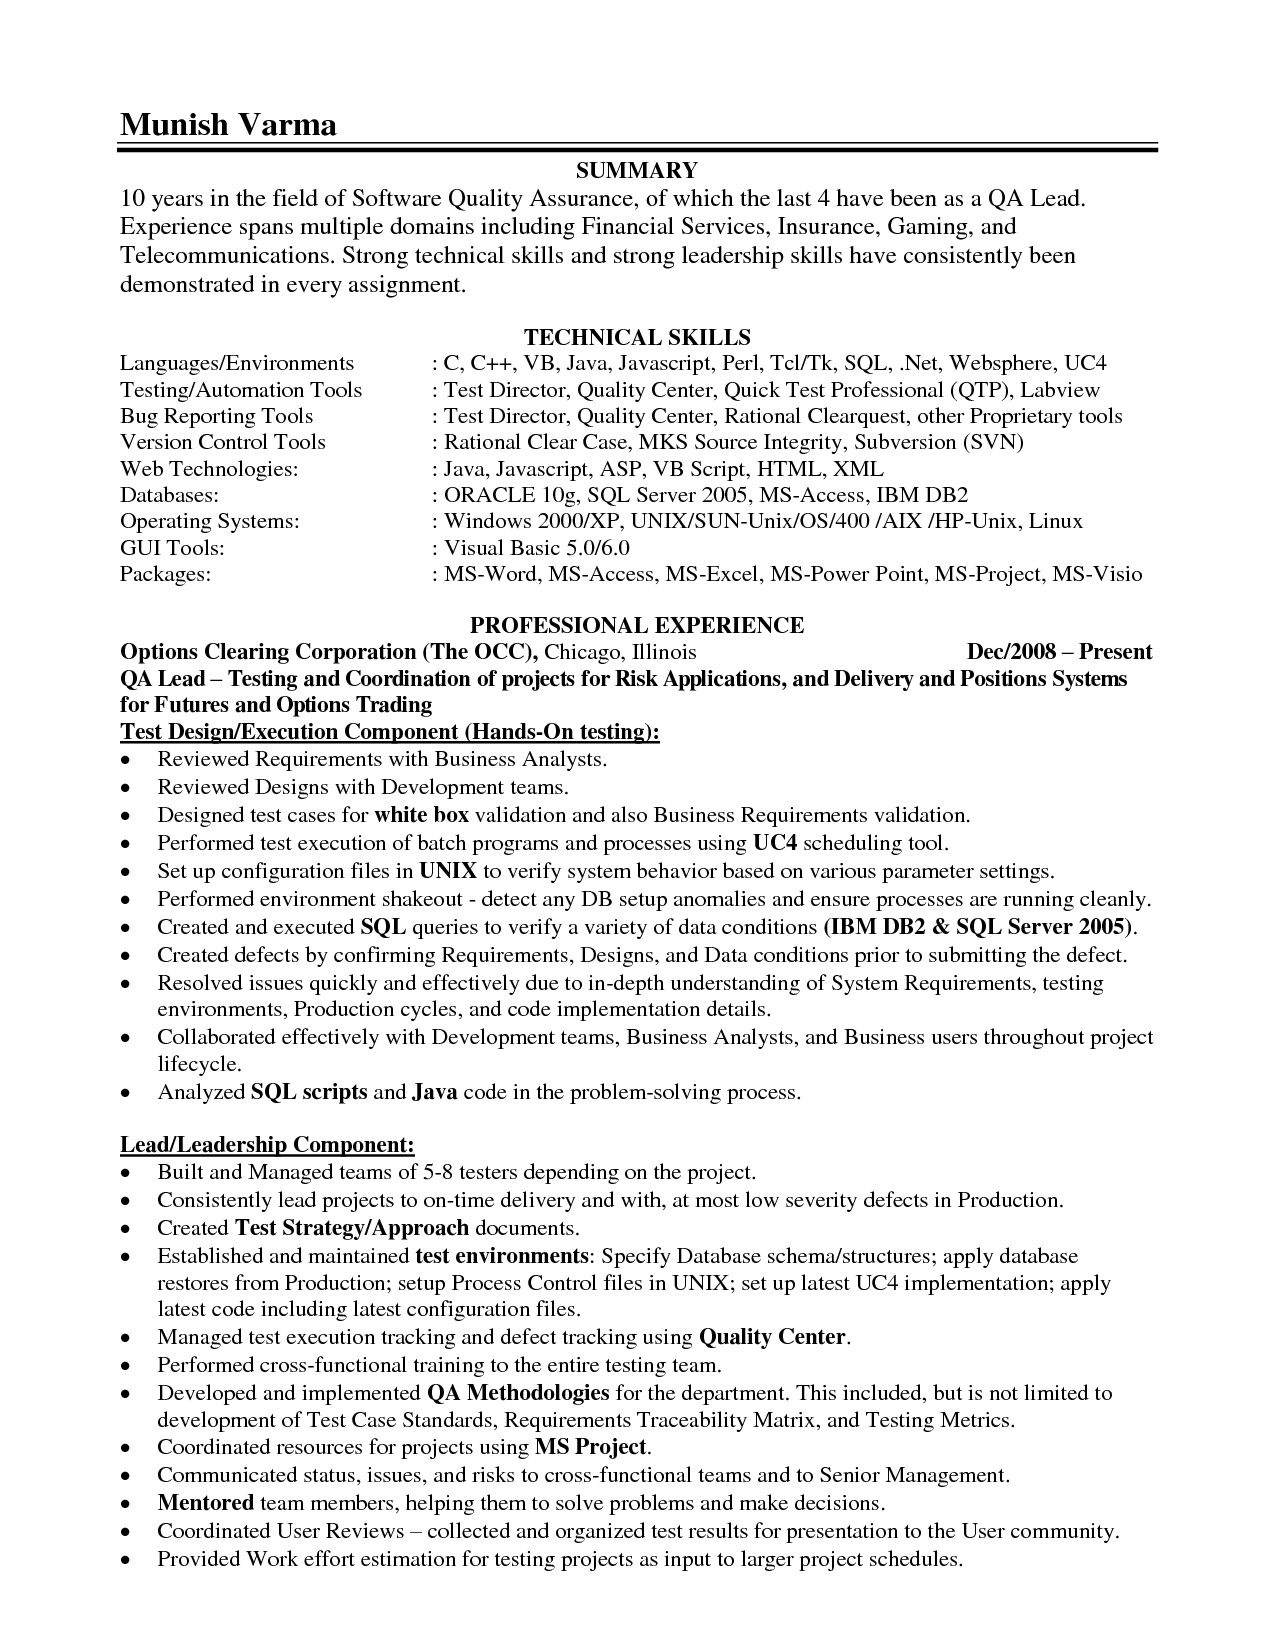 Skill Section Of Resume Example Leadership Skills On Resume Sample Resume Center